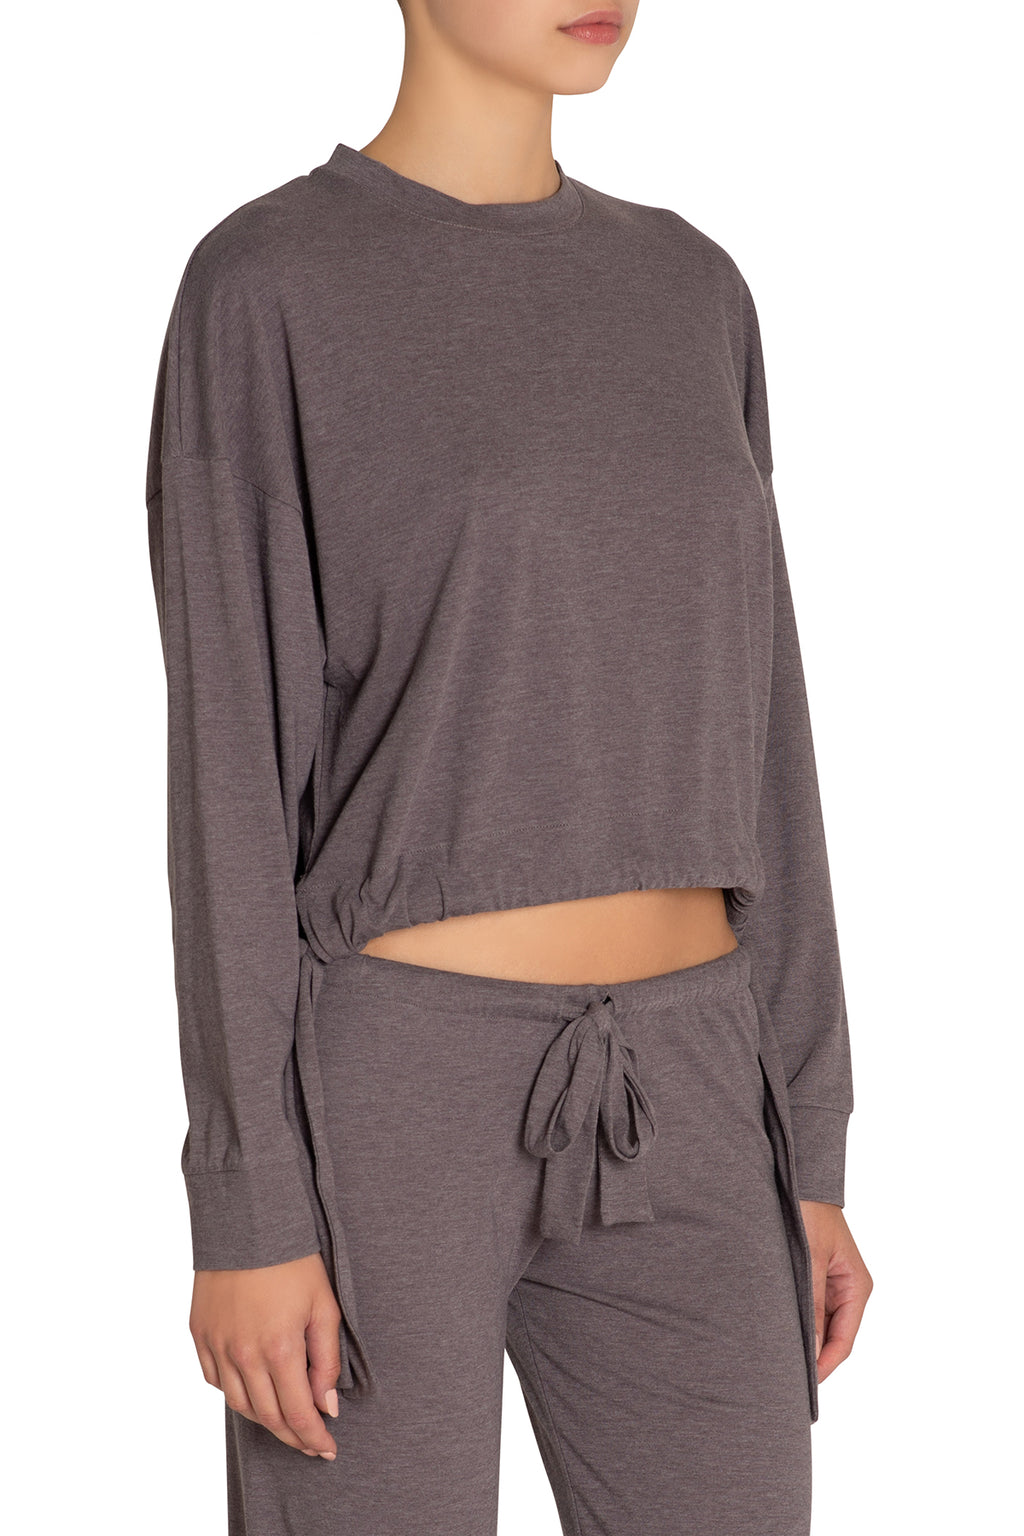 Eberjey Heather Side Tie Sweatshirt - Rabbit